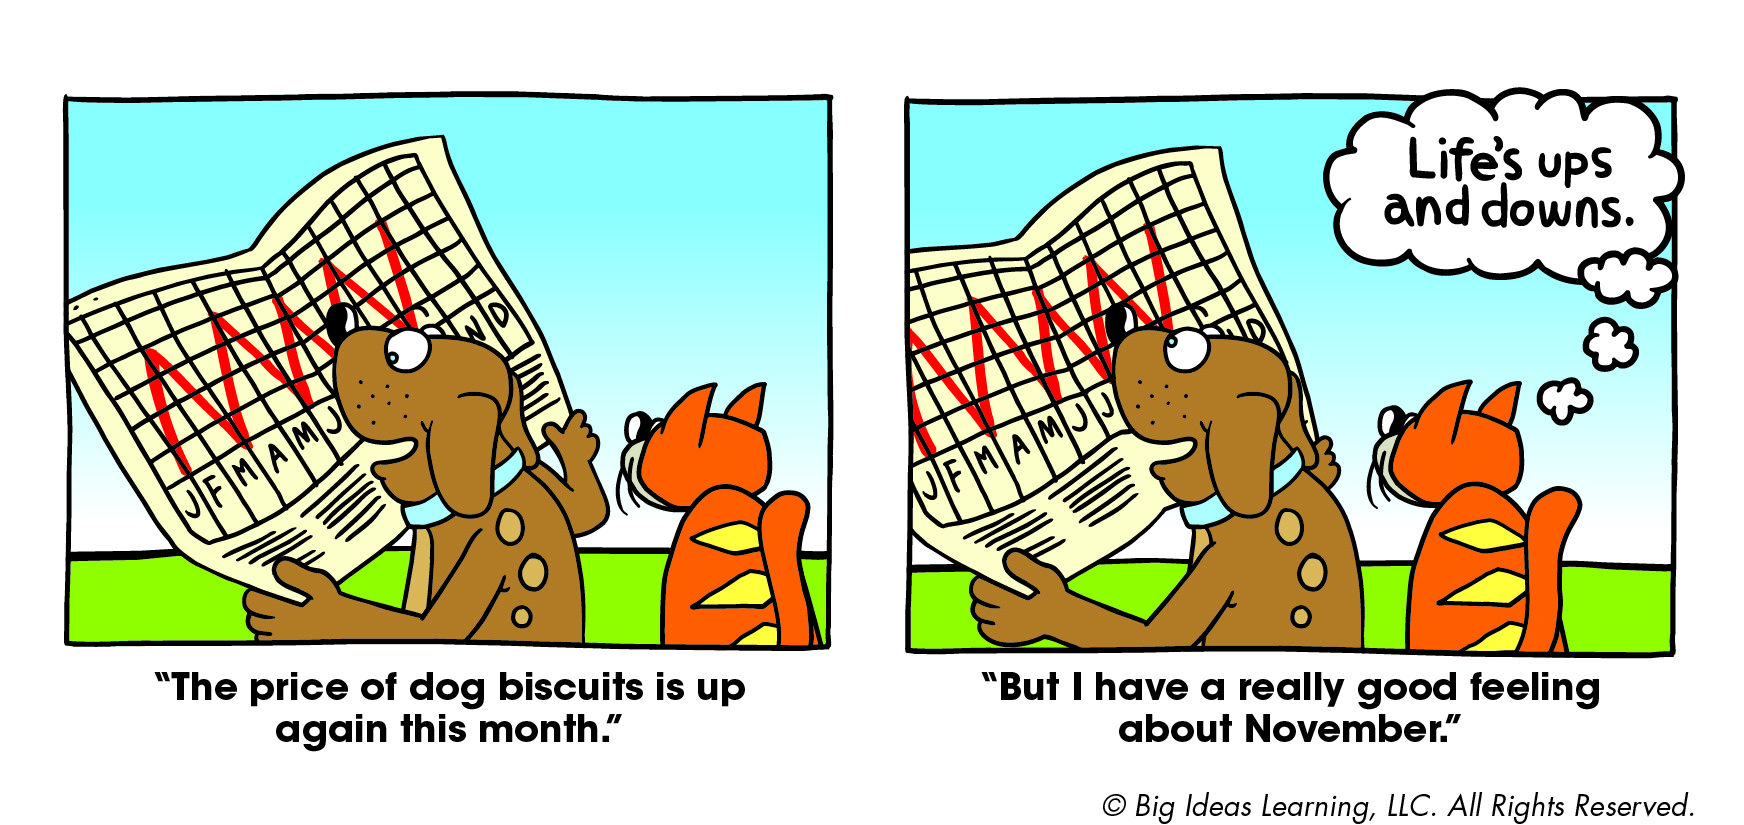 Biscuit Pricing Has Its Ups And Downs Math Cartoon Math Cartoons Big Ideas Math Big Ideas Learning [ 825 x 1744 Pixel ]